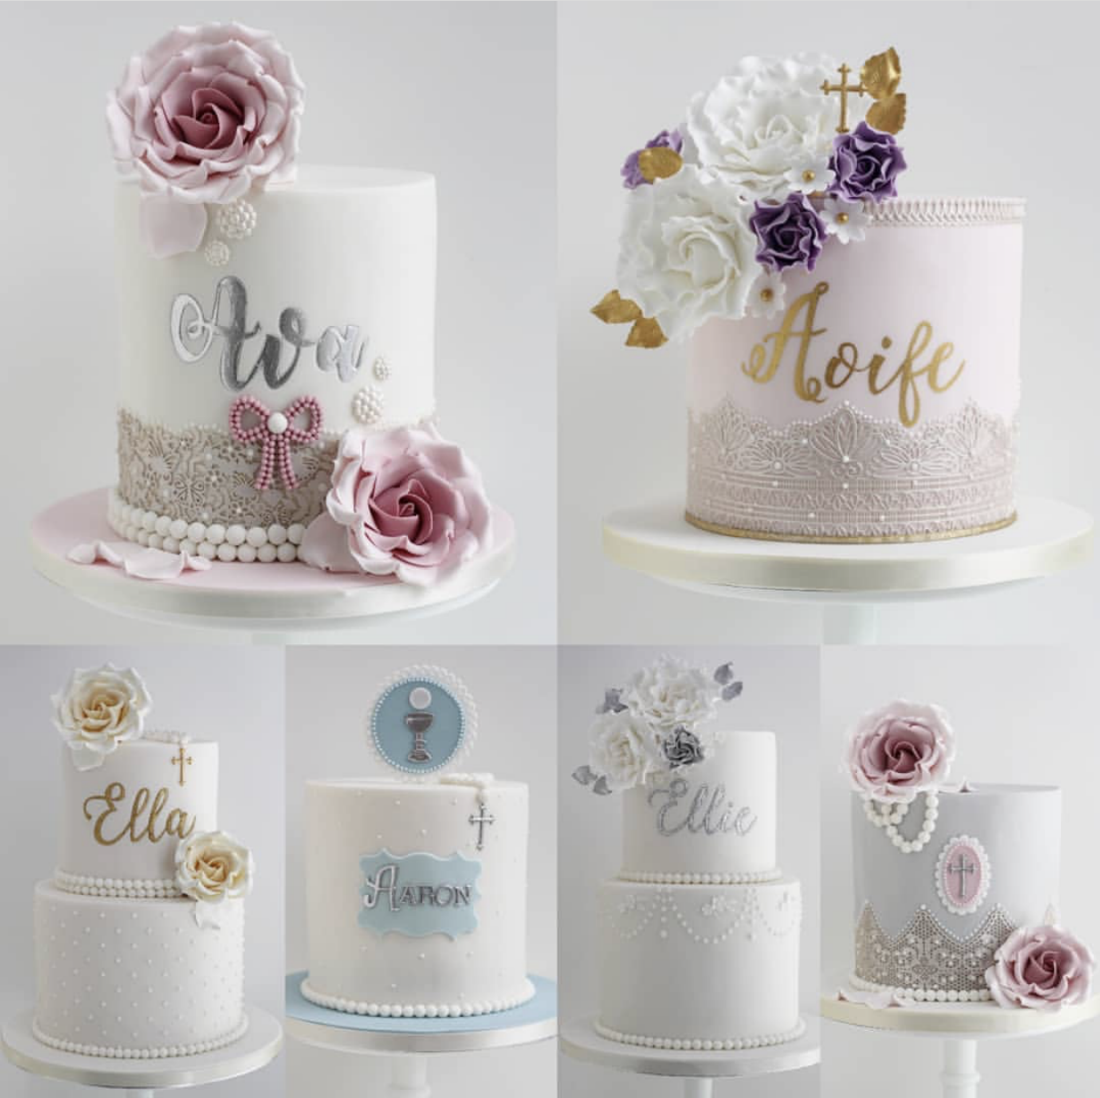 stunning Communion cakes